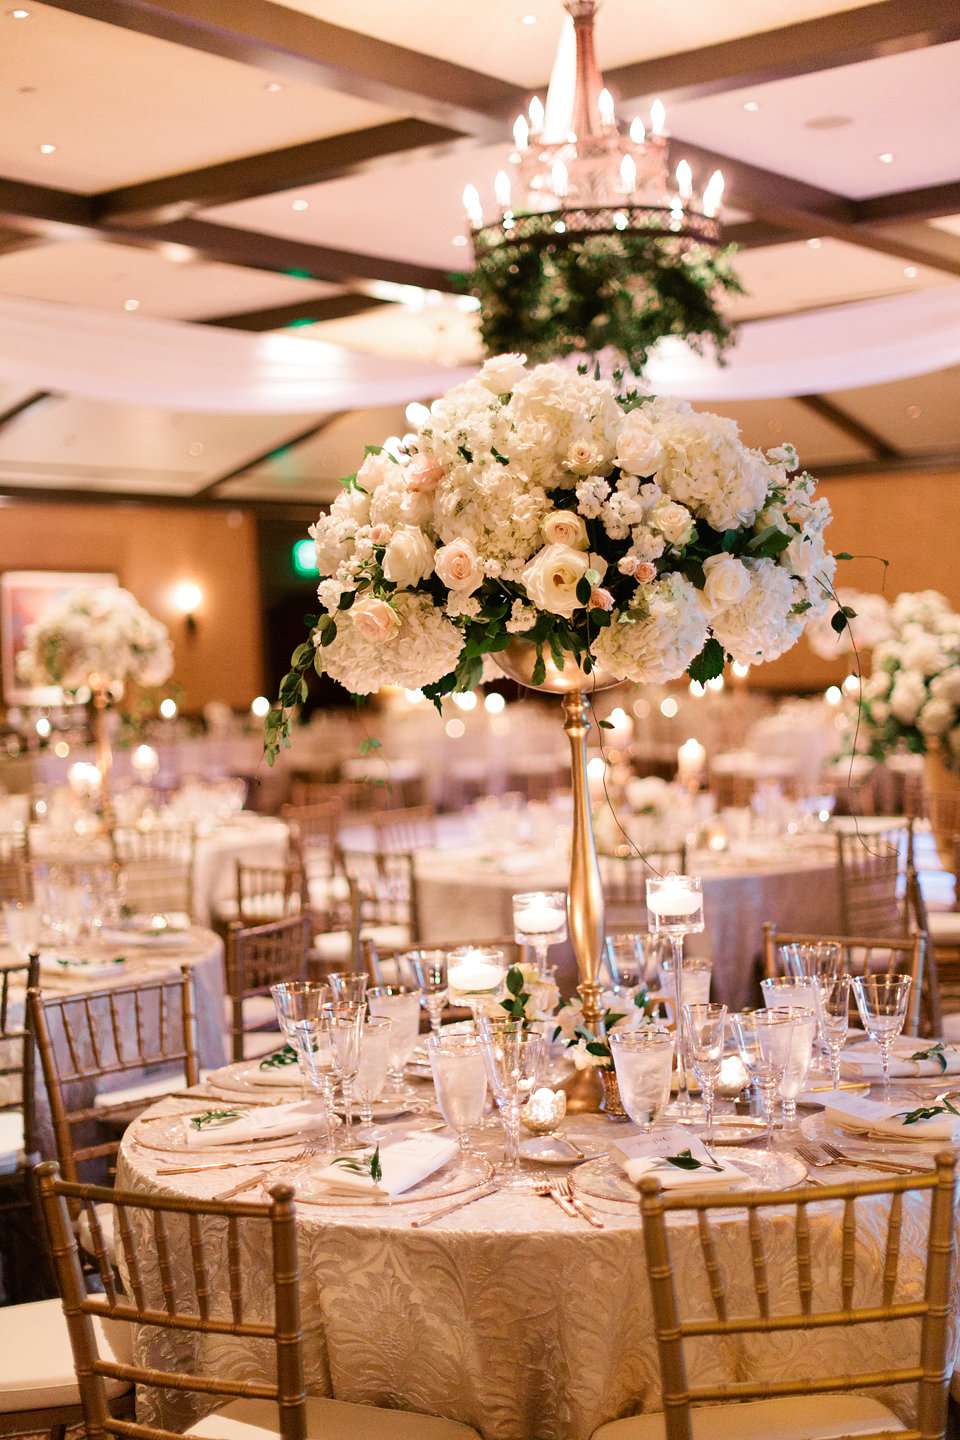 Greenery and draping with large blush and gold centerpieces at the TPC Sawgrass Clubhouse  Blush Wedding at TPC Sawgrass Wedding Ponte Vedra Beach  Jacksonville Wedding Planner Blue Ribbon Weddings  Jacksonville Wedding Photographer Debra Eby Photography  Wedding Ceremony & Reception at TPC Sawgrass Jacksonville